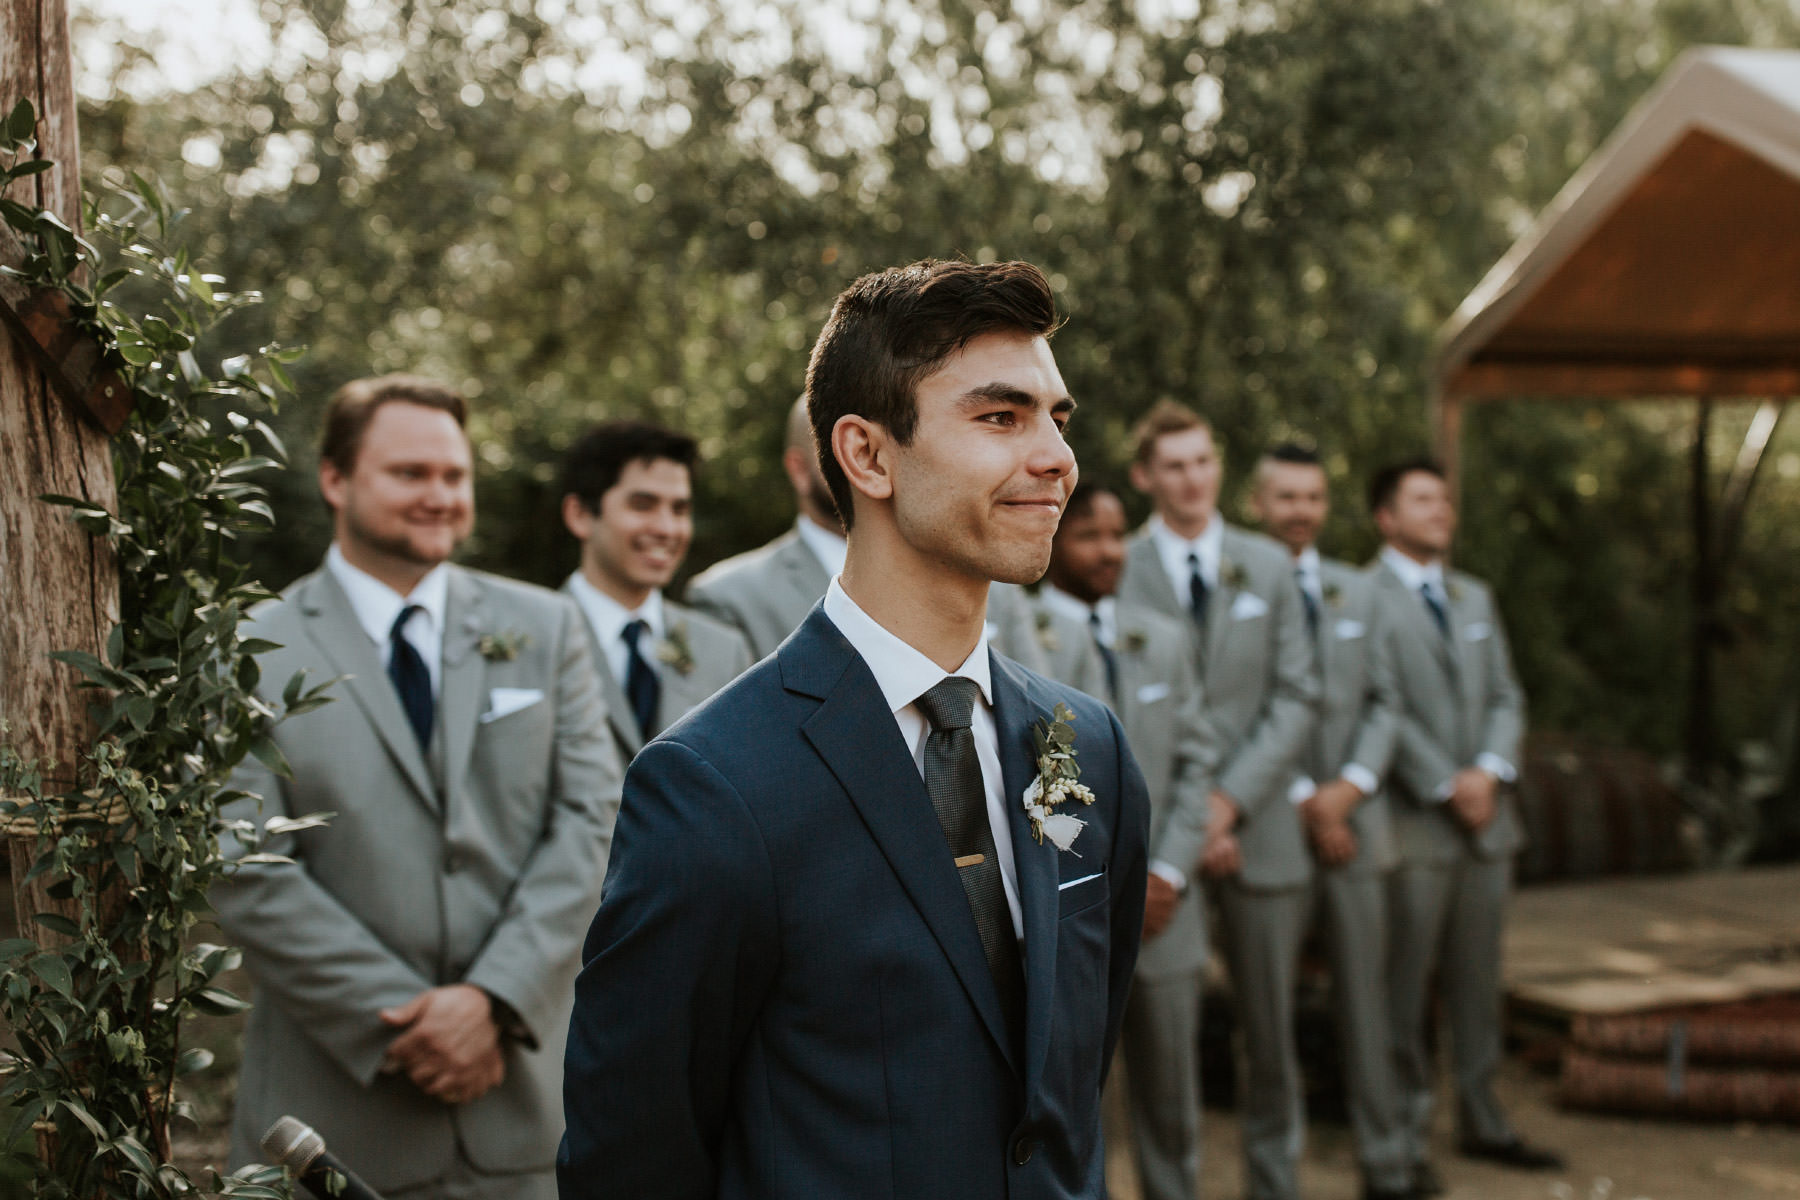 Groom reaction to his bride